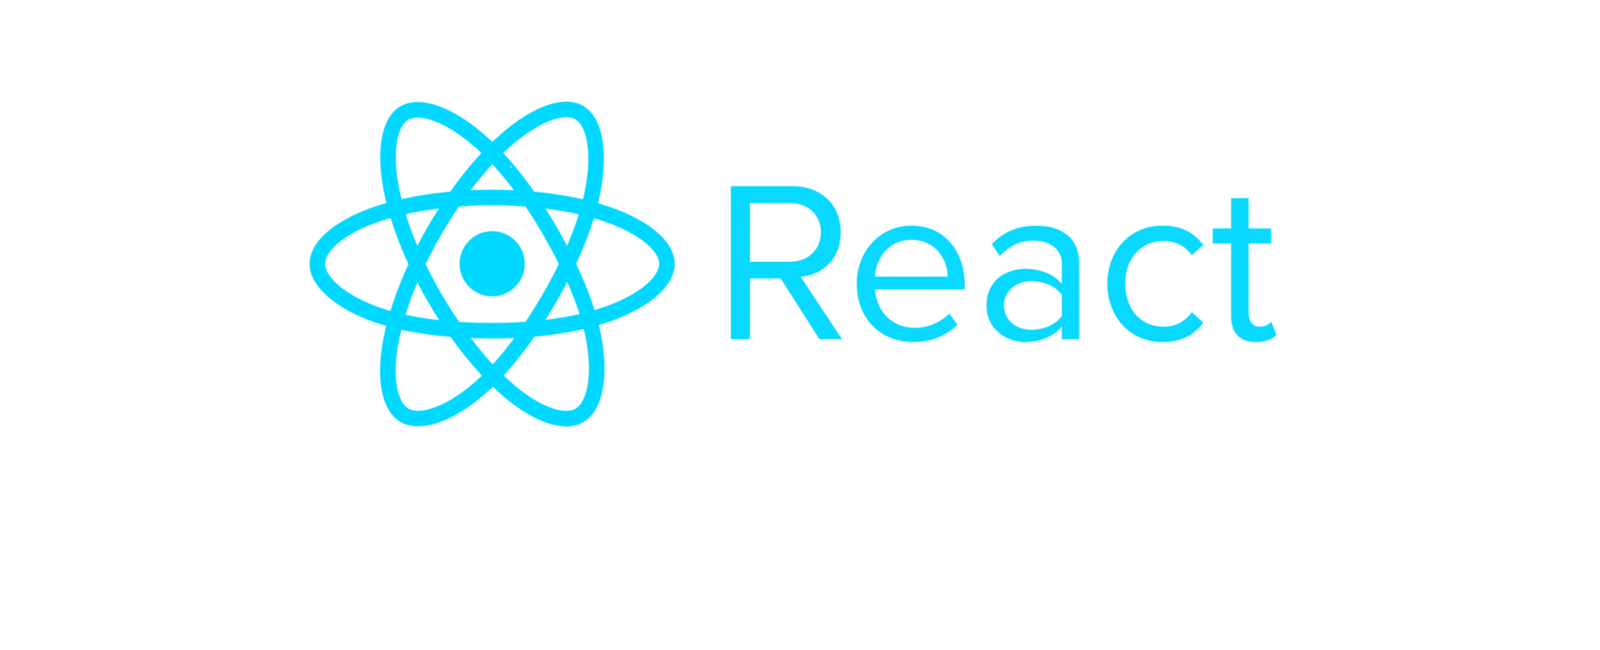 All about React in a week! October 21st - 27th